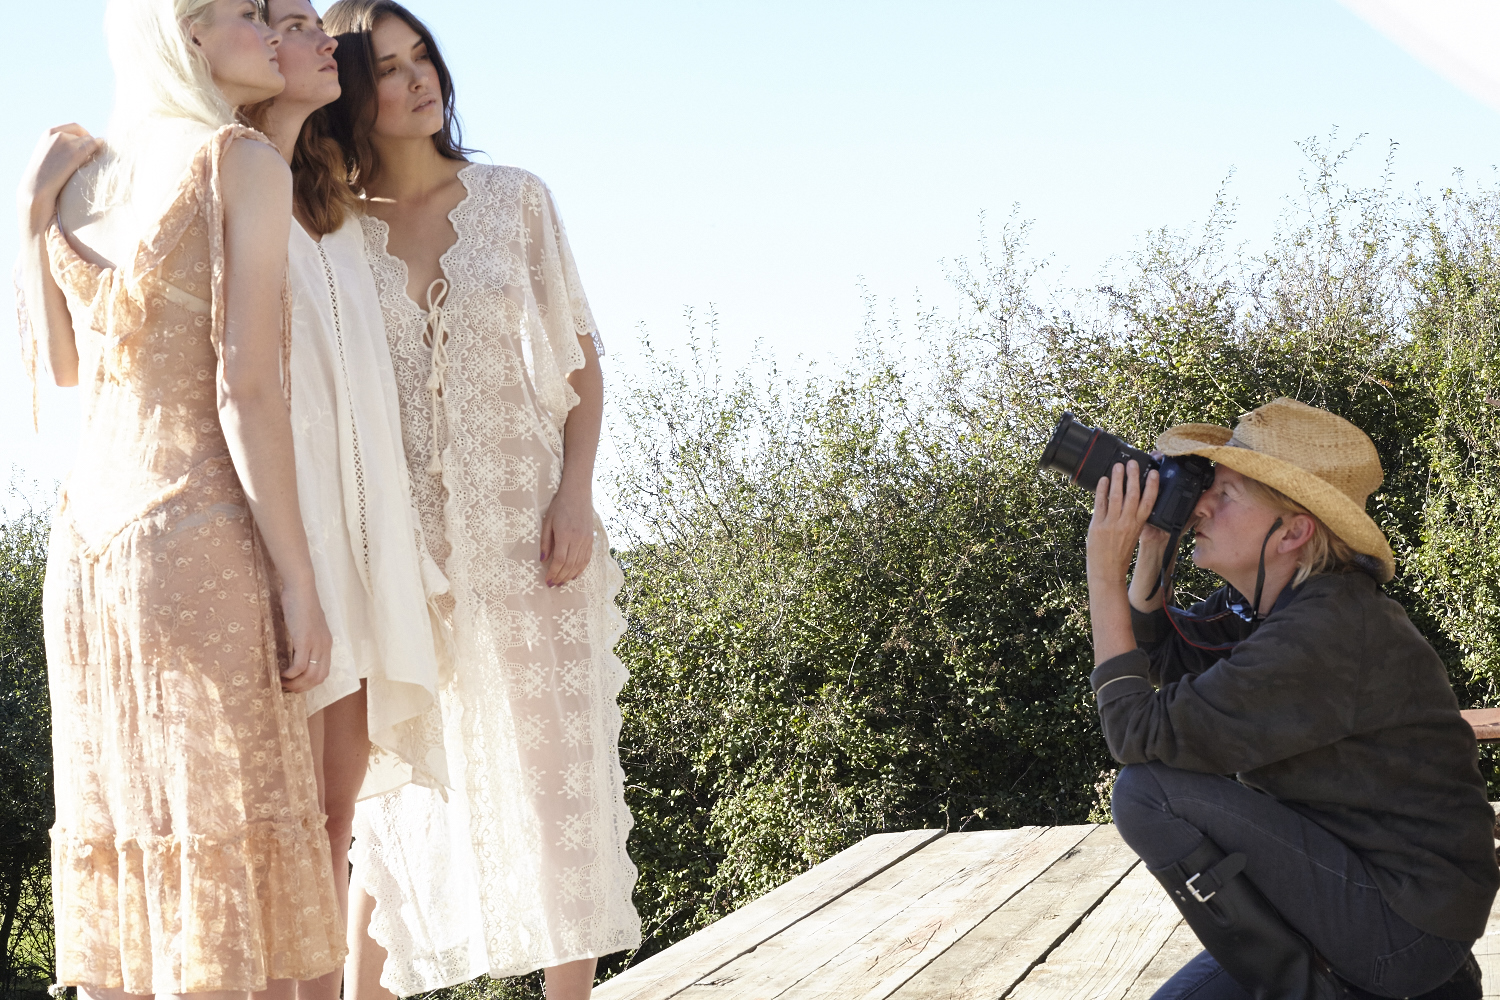 Behind the scenes with Wendy Carrig